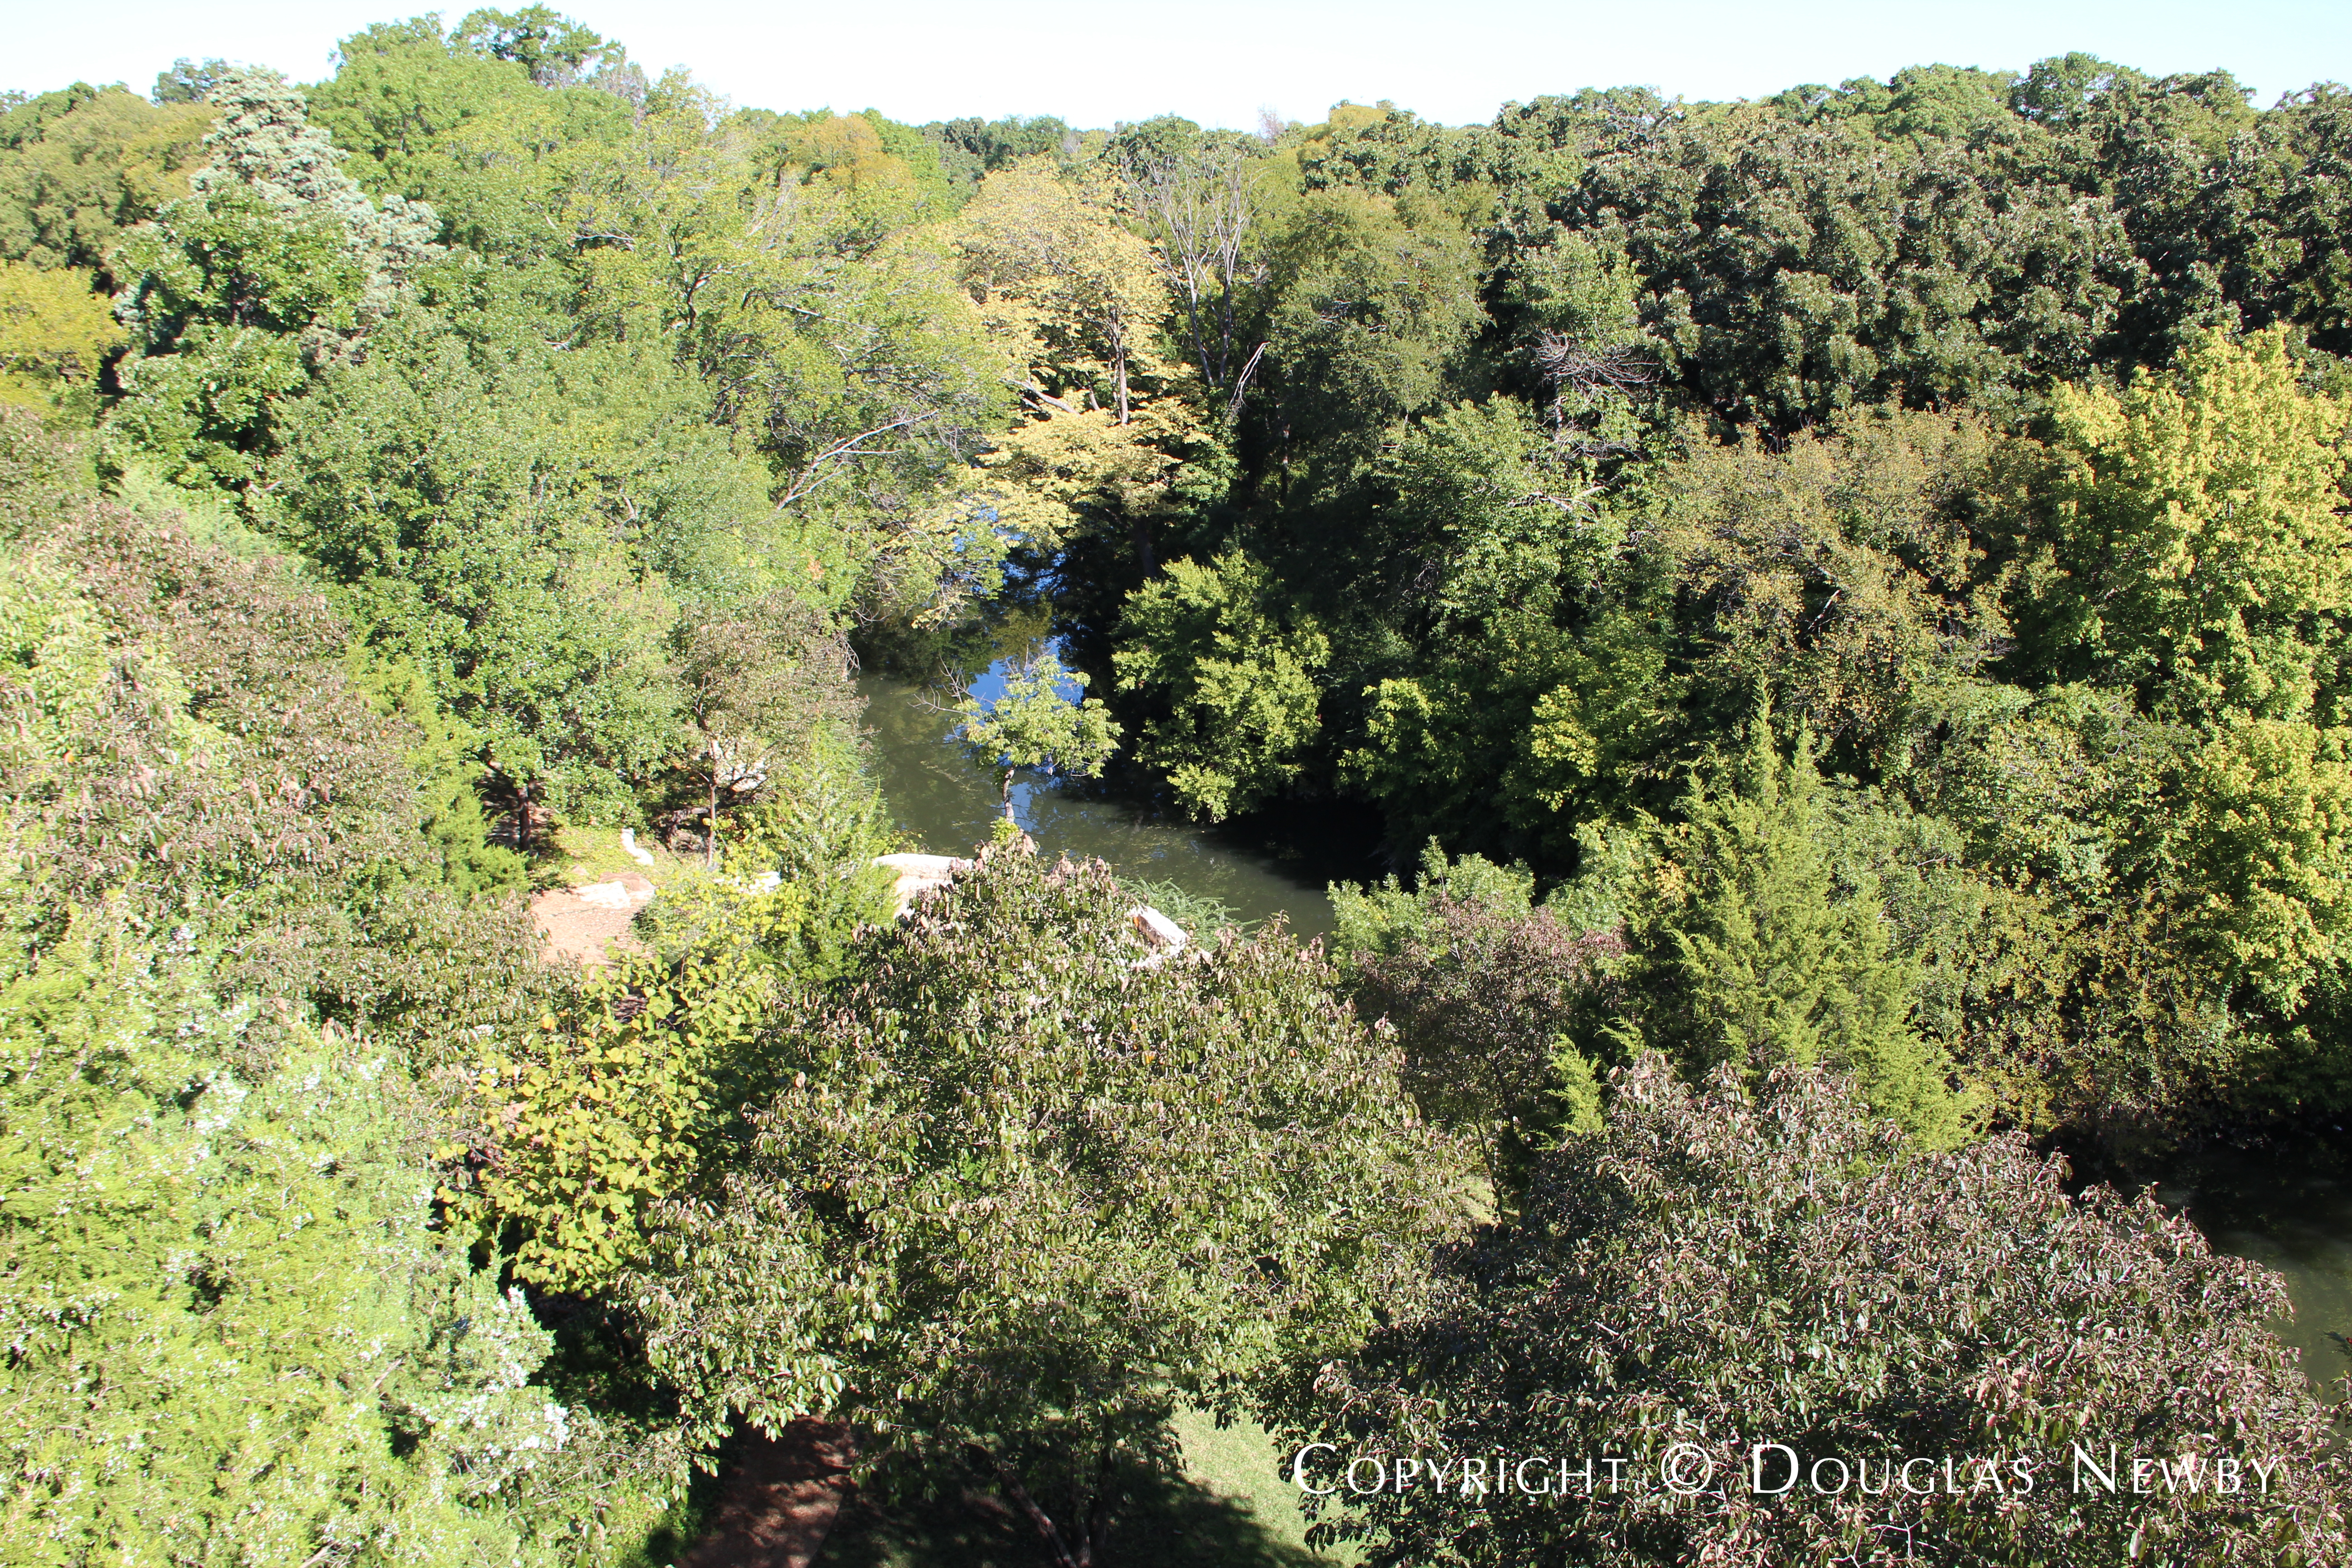 View of Glen Abbey Site, White Rock Creek and Surrounding Nature Area From Upper Balcony